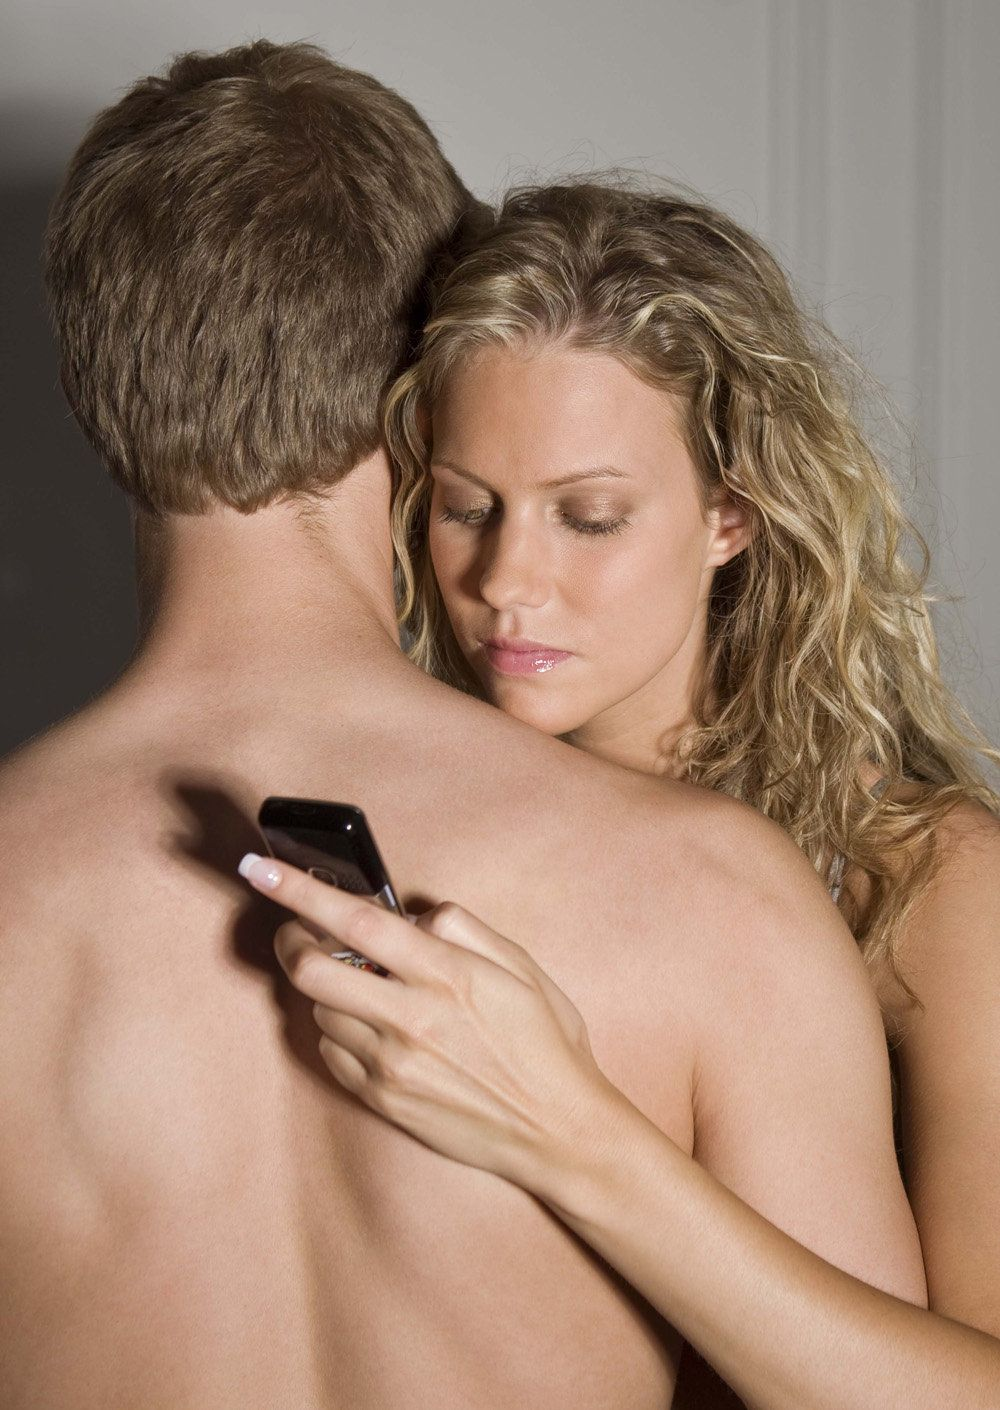 discreet dating for married